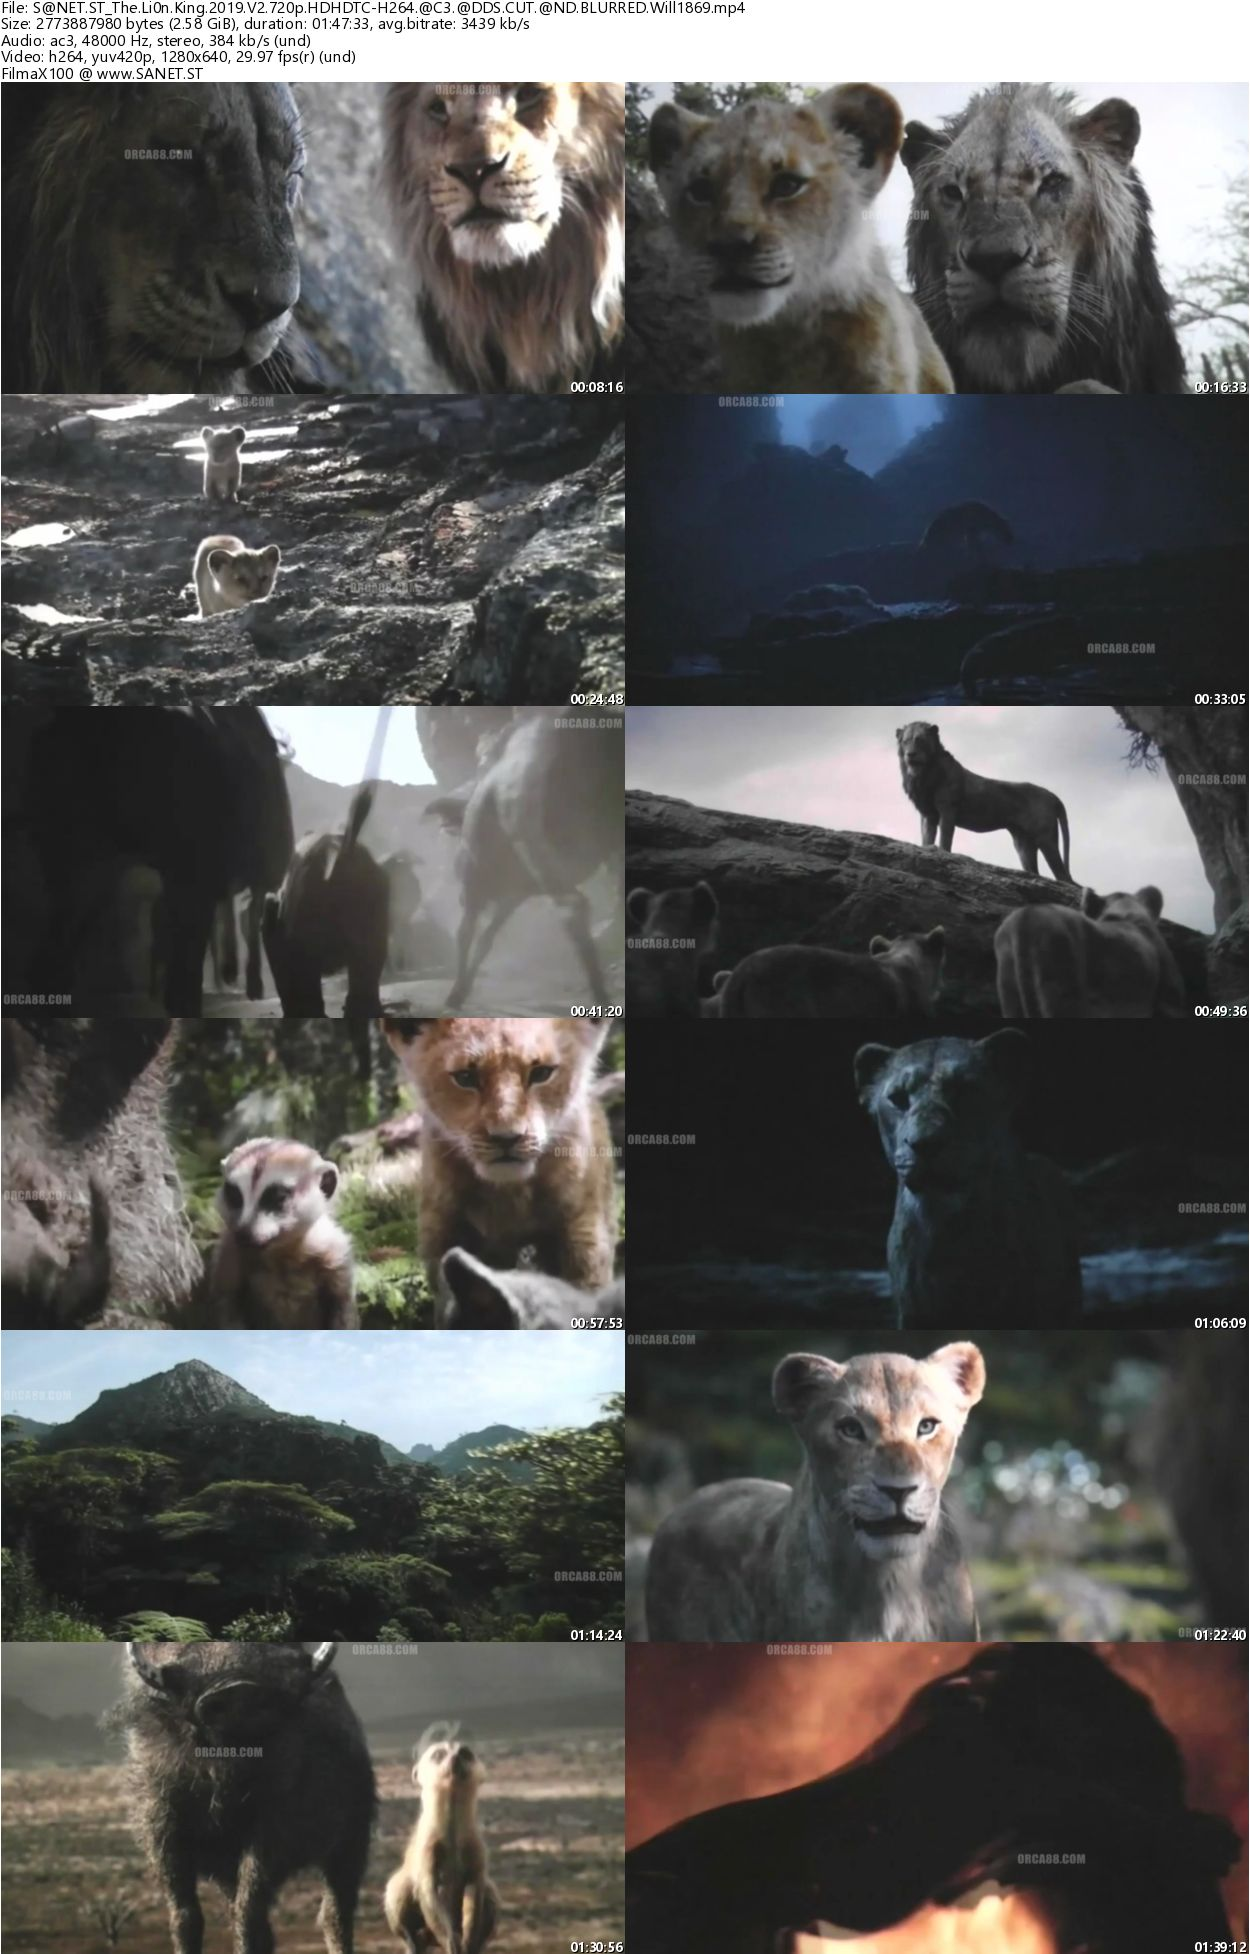 Lion King 1080p: Download The Lion King 2019 V2 720p HDTC H264 AC3 ADDS CUT